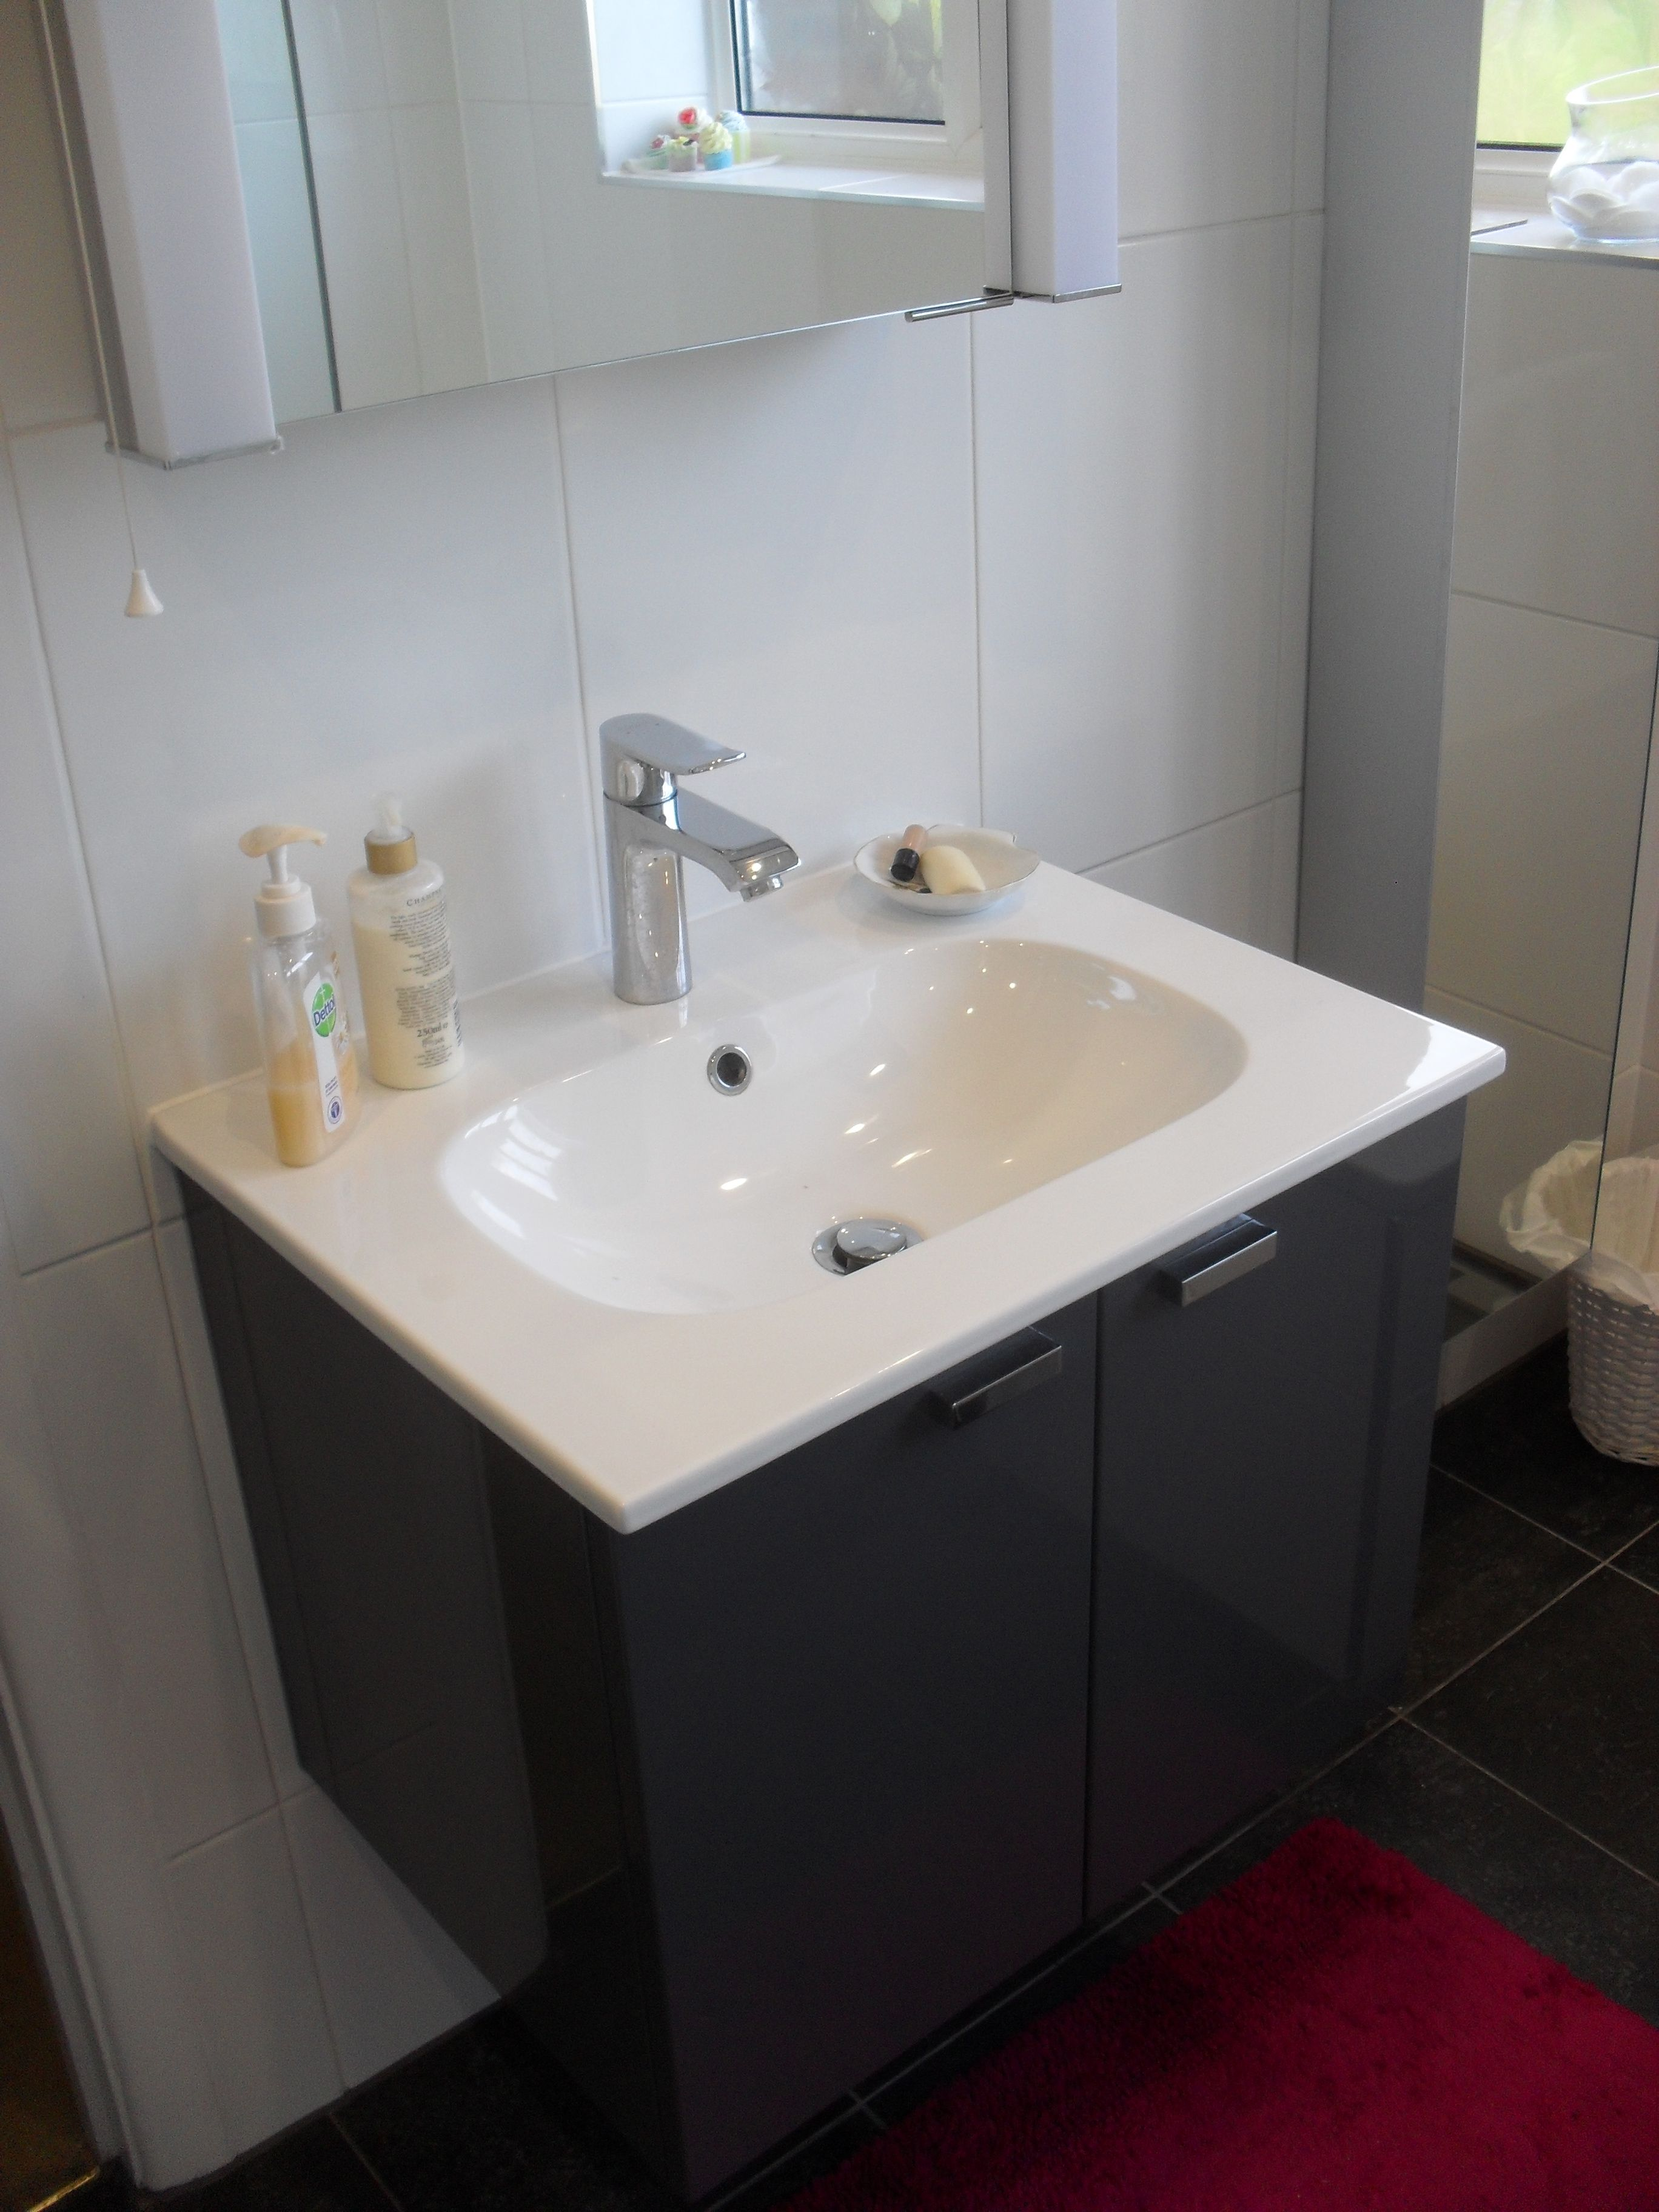 Dansani Kantate 61cm Basin Is Certainly Elegant In A Smaller Size This Example Is High Gloss Grey The Hansgrohe Metris Mixer Complimen Wet Rooms Basin Design